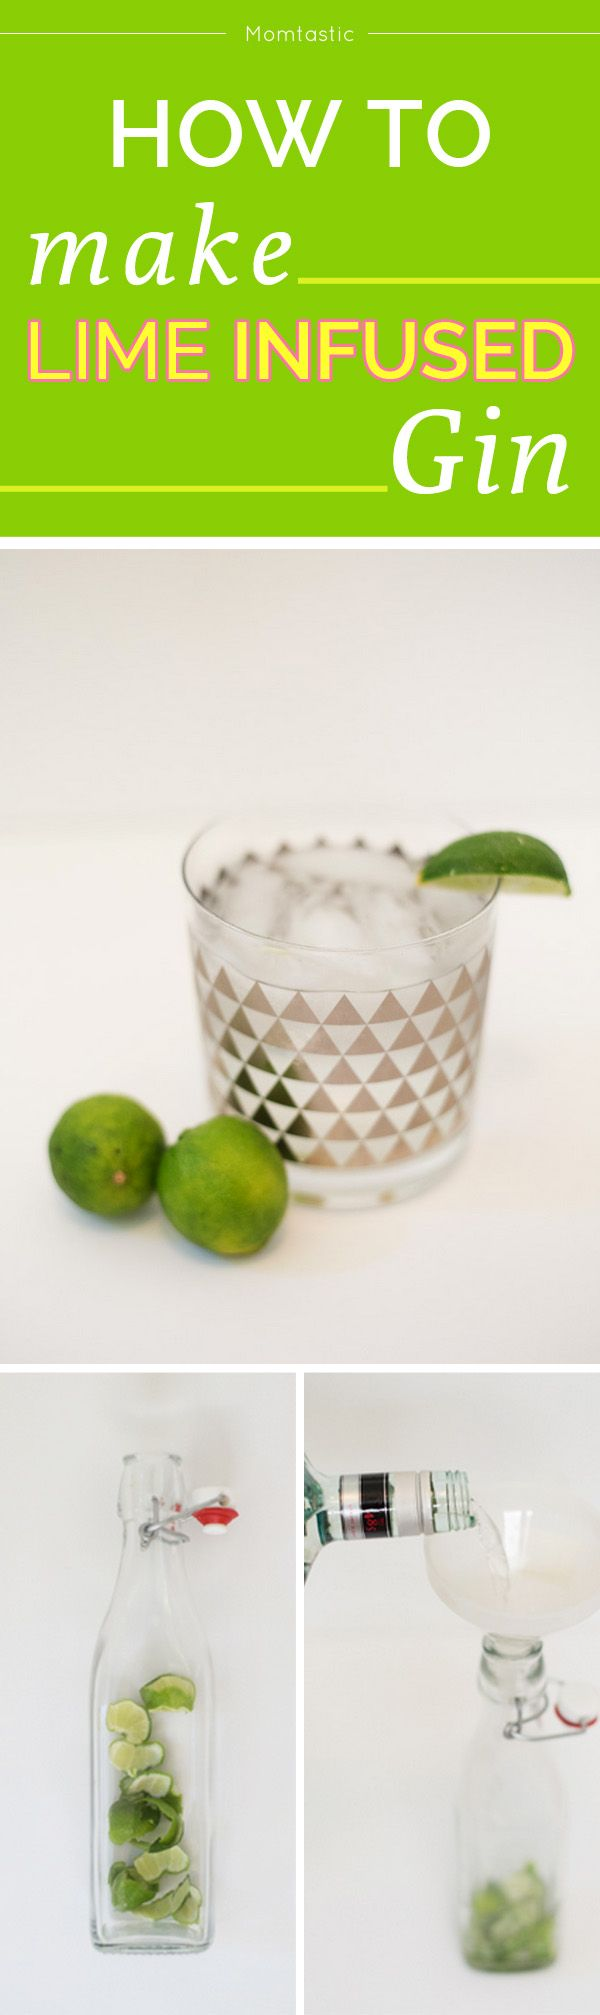 How to make lime infused gin - perfect recipe for gin and tonics!